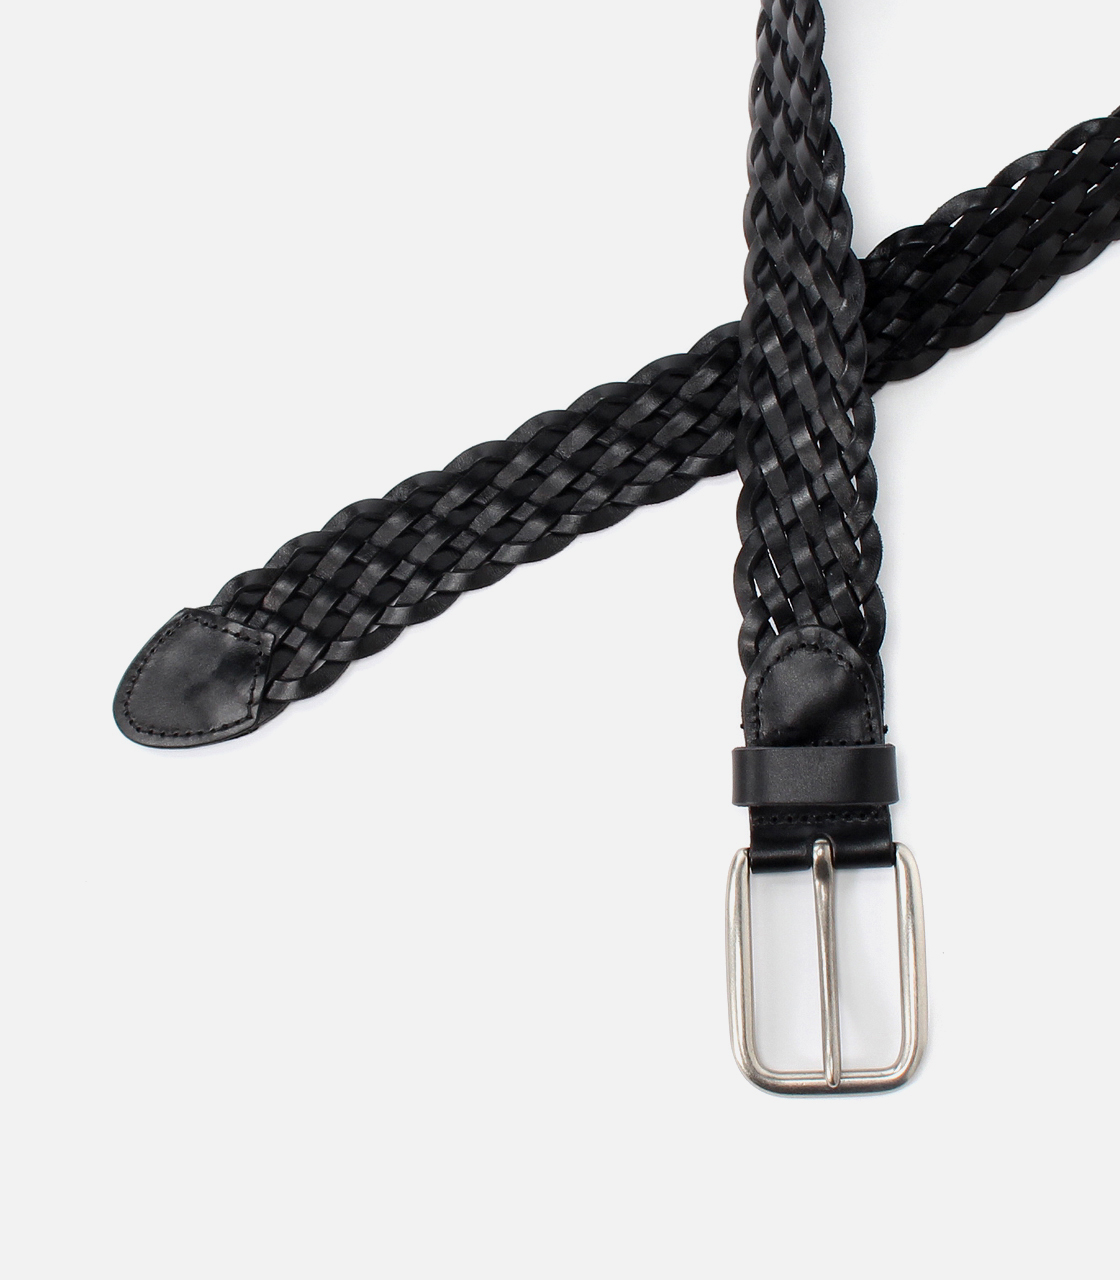 MESH LEATHER BELT 詳細画像 BLK 4